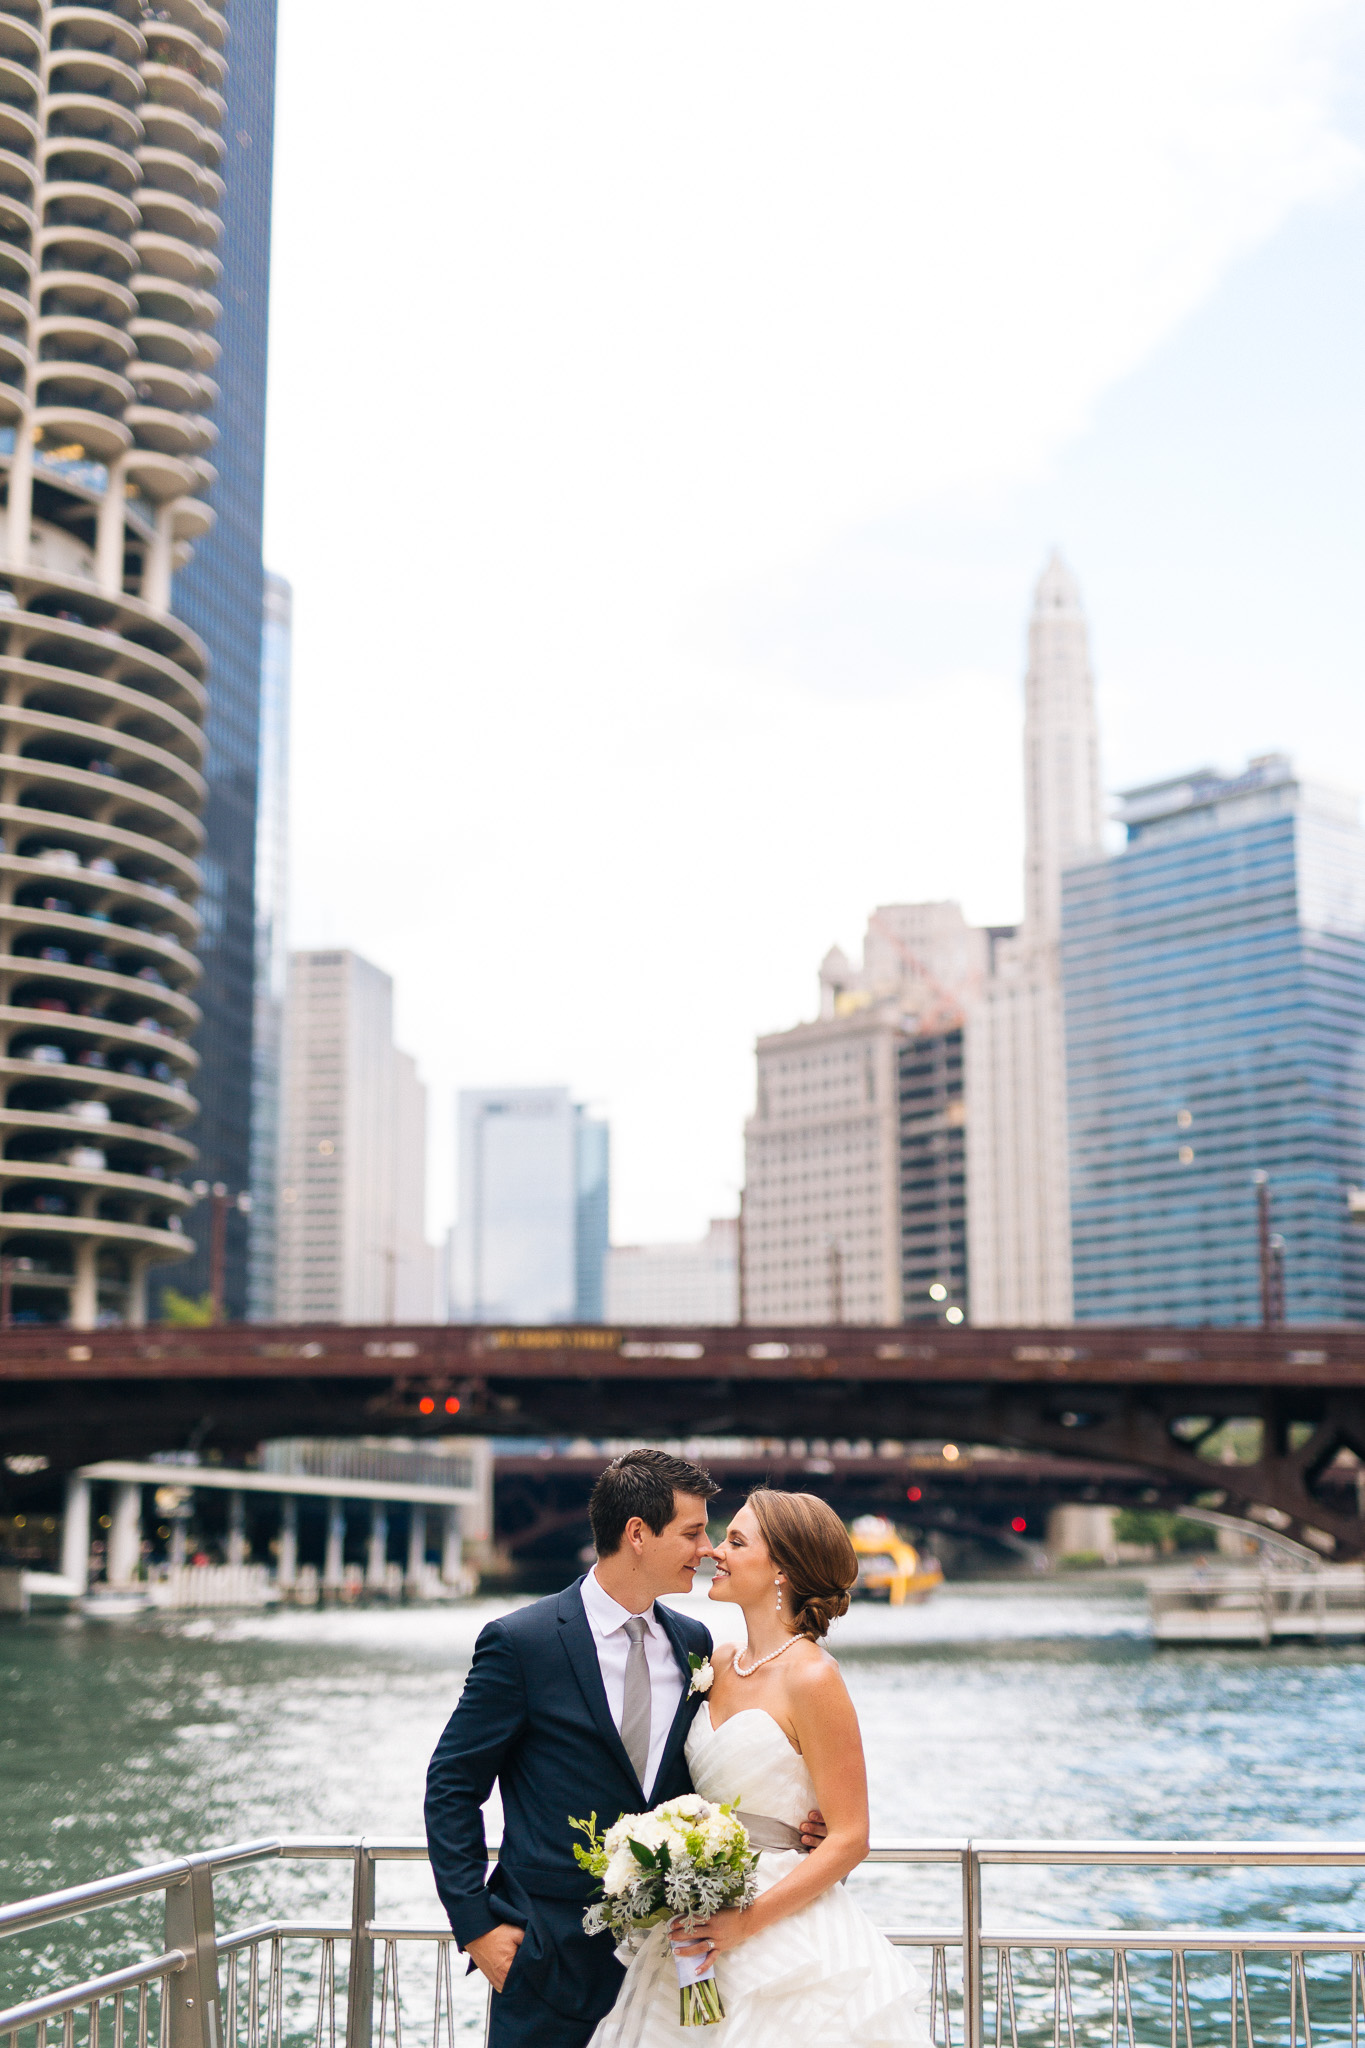 Downtown Chicago Wedding Photographer Outdoors Outside River Riverwalk Bride Groom Portrait Web Res (1 of 1).jpg